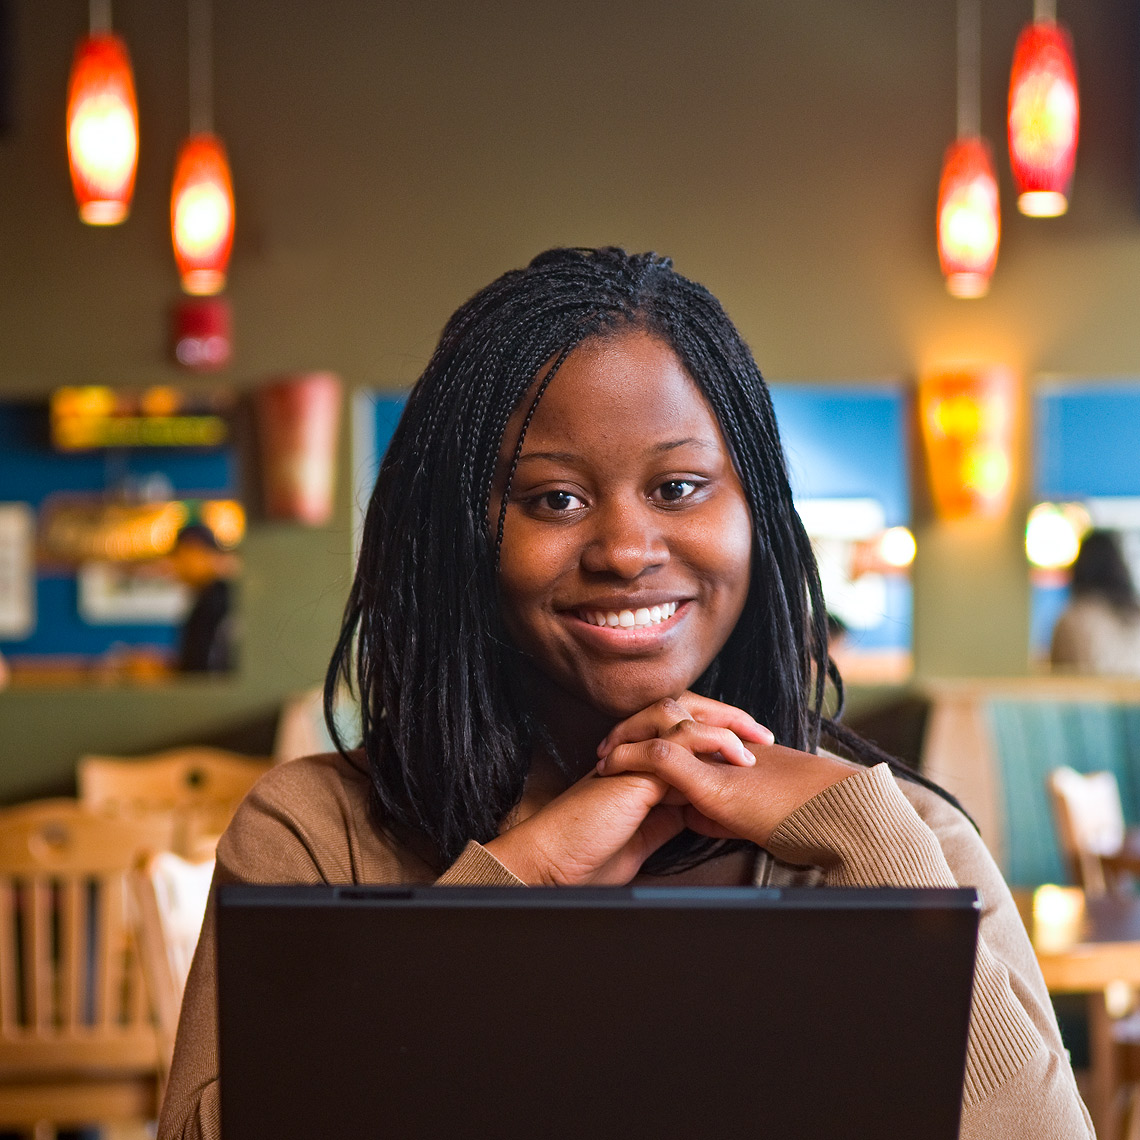 Portrait of black female college student with laptop in the foreground.